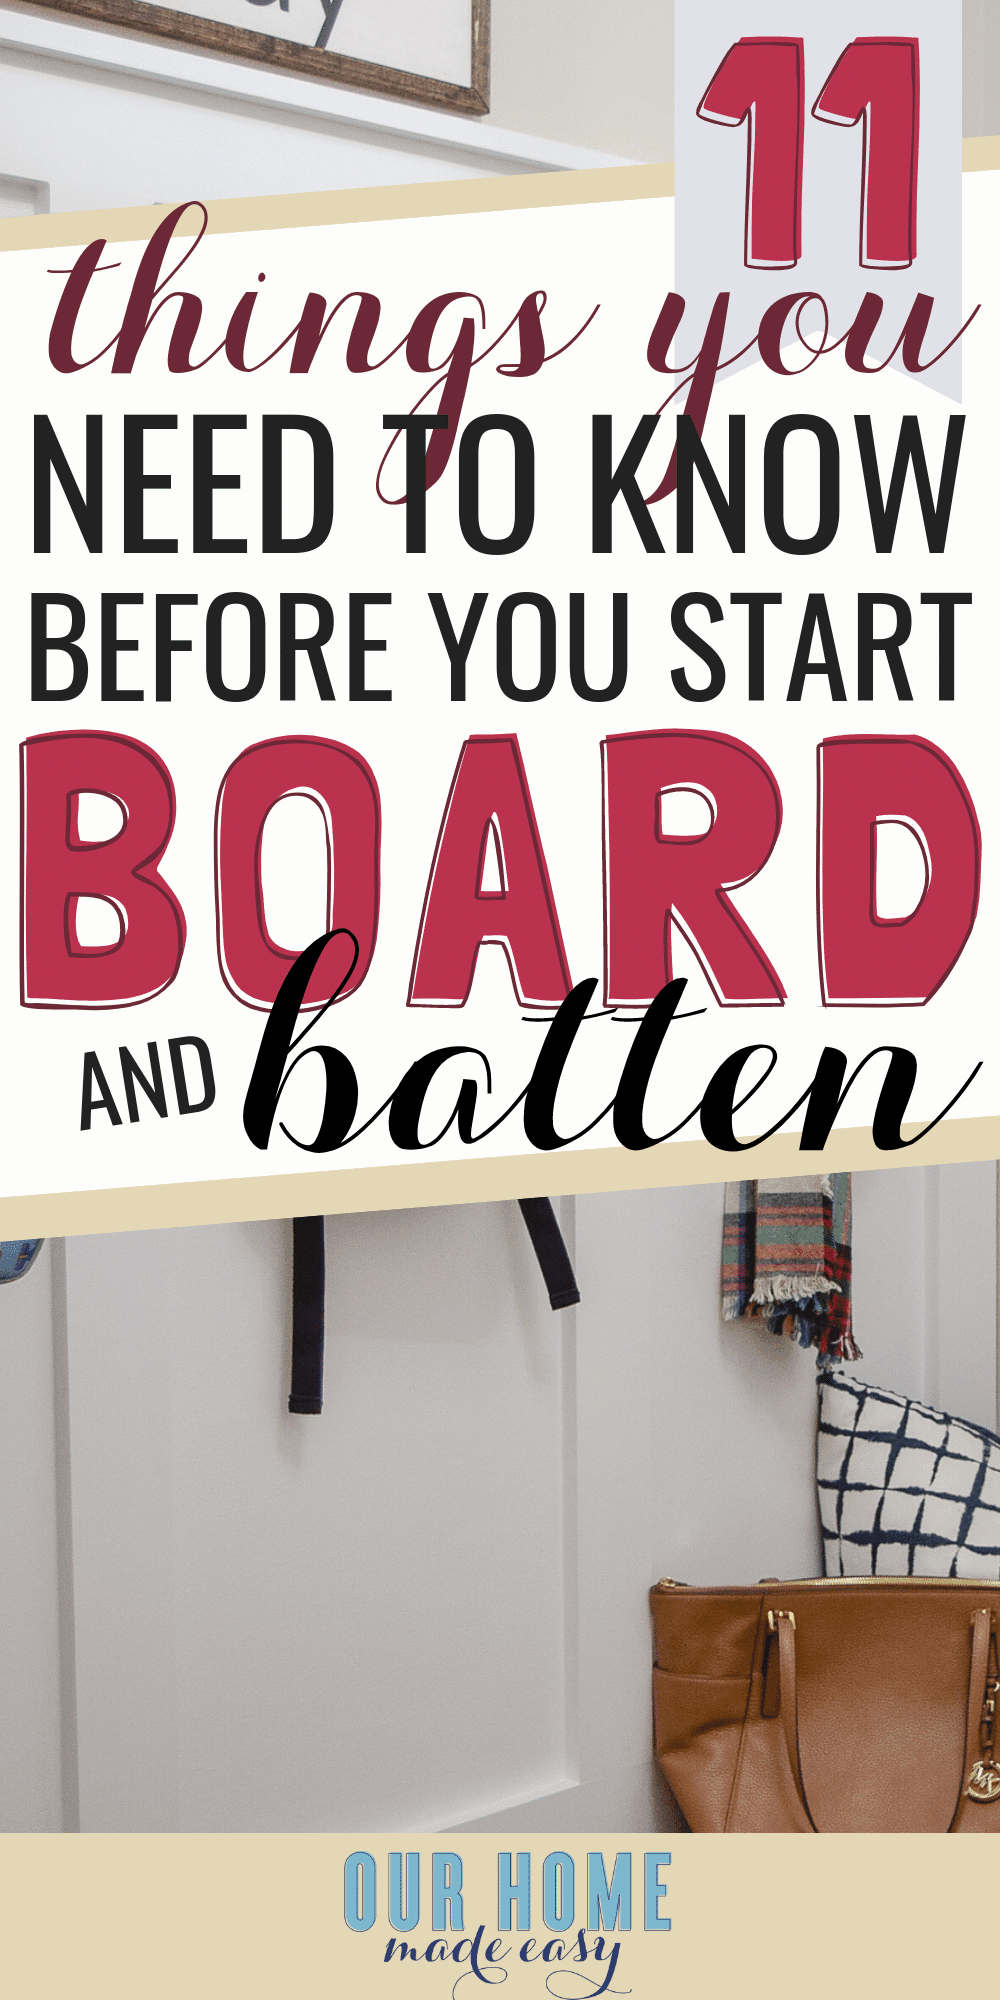 Here are the most important things to know before you start board & batten walls! Learn the tricks to making the project so much easier! Click to see them! #boardandbatten #homedecor #farmhouse #ourhomemadeeasy